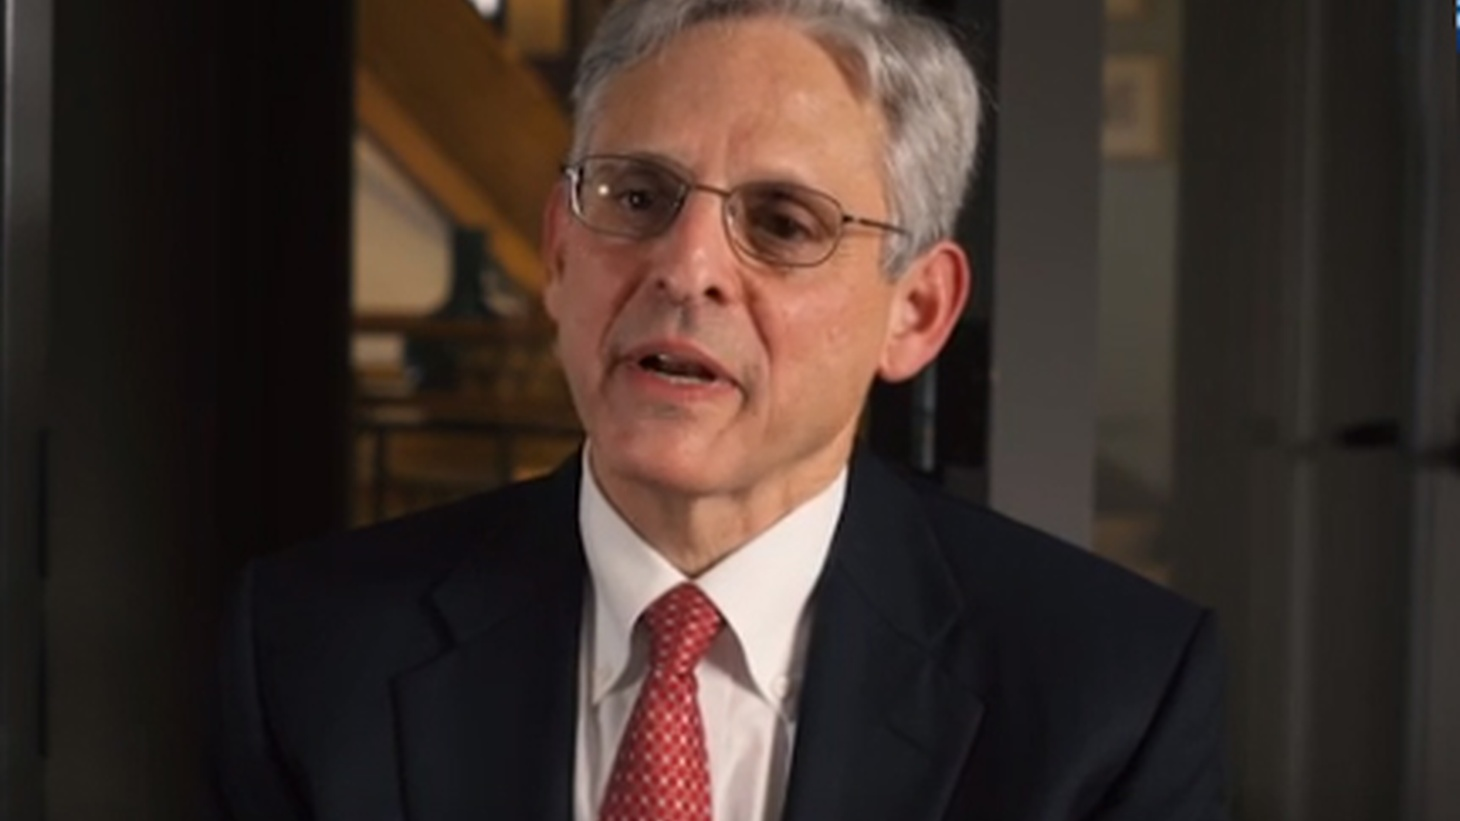 President Obama has nominated Chief Judge Merrick Garland of the Federal Court of Appeals in Washington, DC as a successor to the late Supreme Court Justice Antonin Scalia. Republicans are accusing Obama of politicizing the court — the same charge Democrats have leveled against Republicans under similar circumstances.